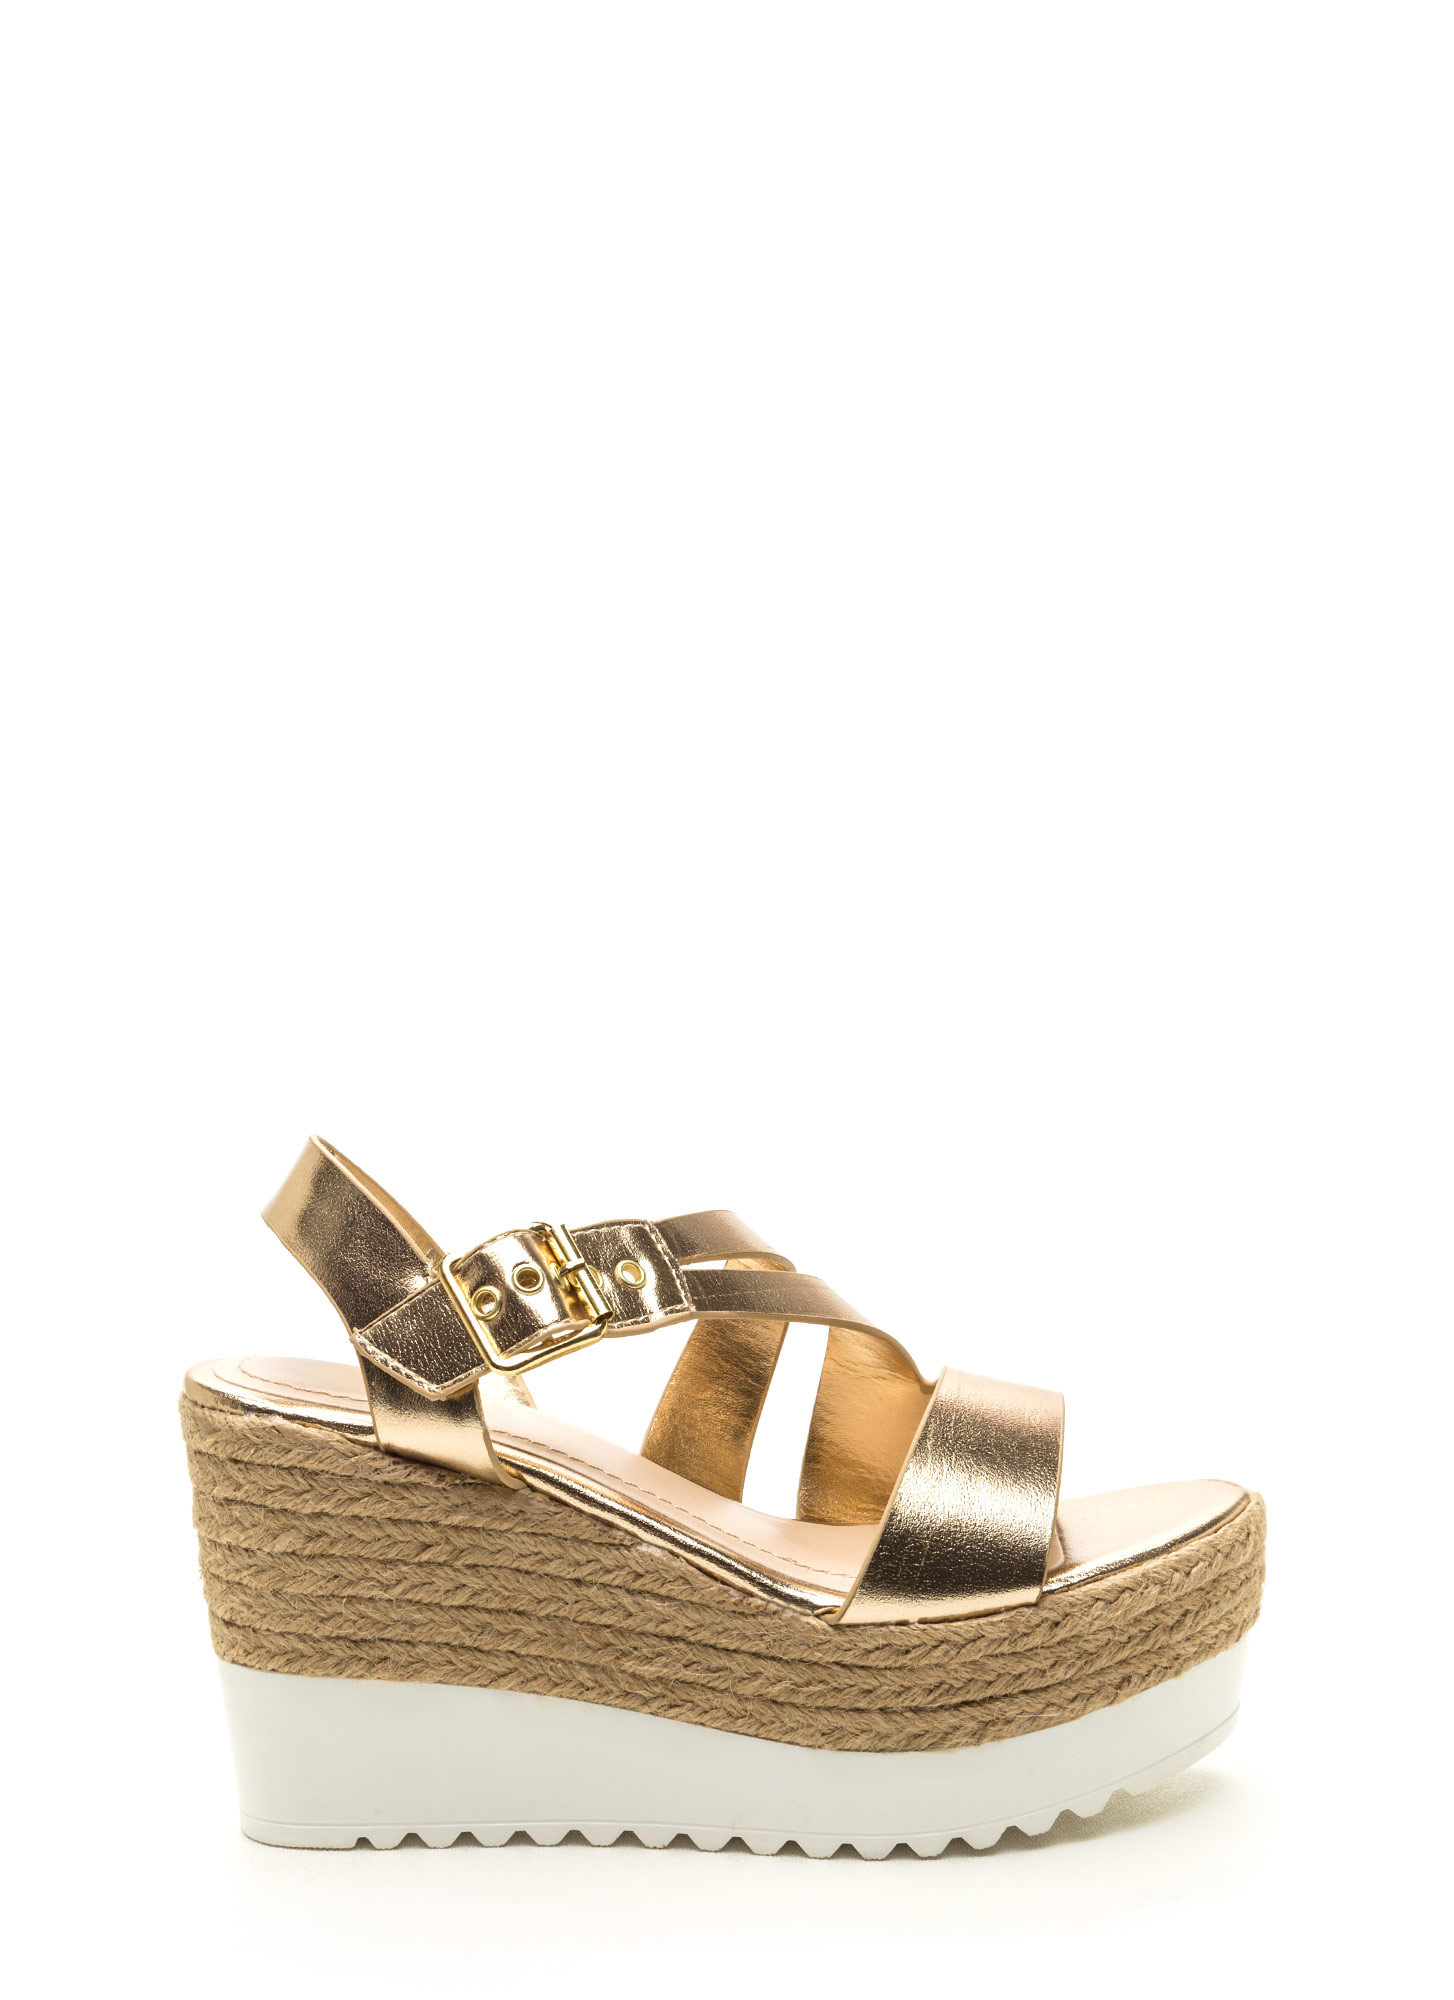 Long Weekend Metallic Wedges GOLD